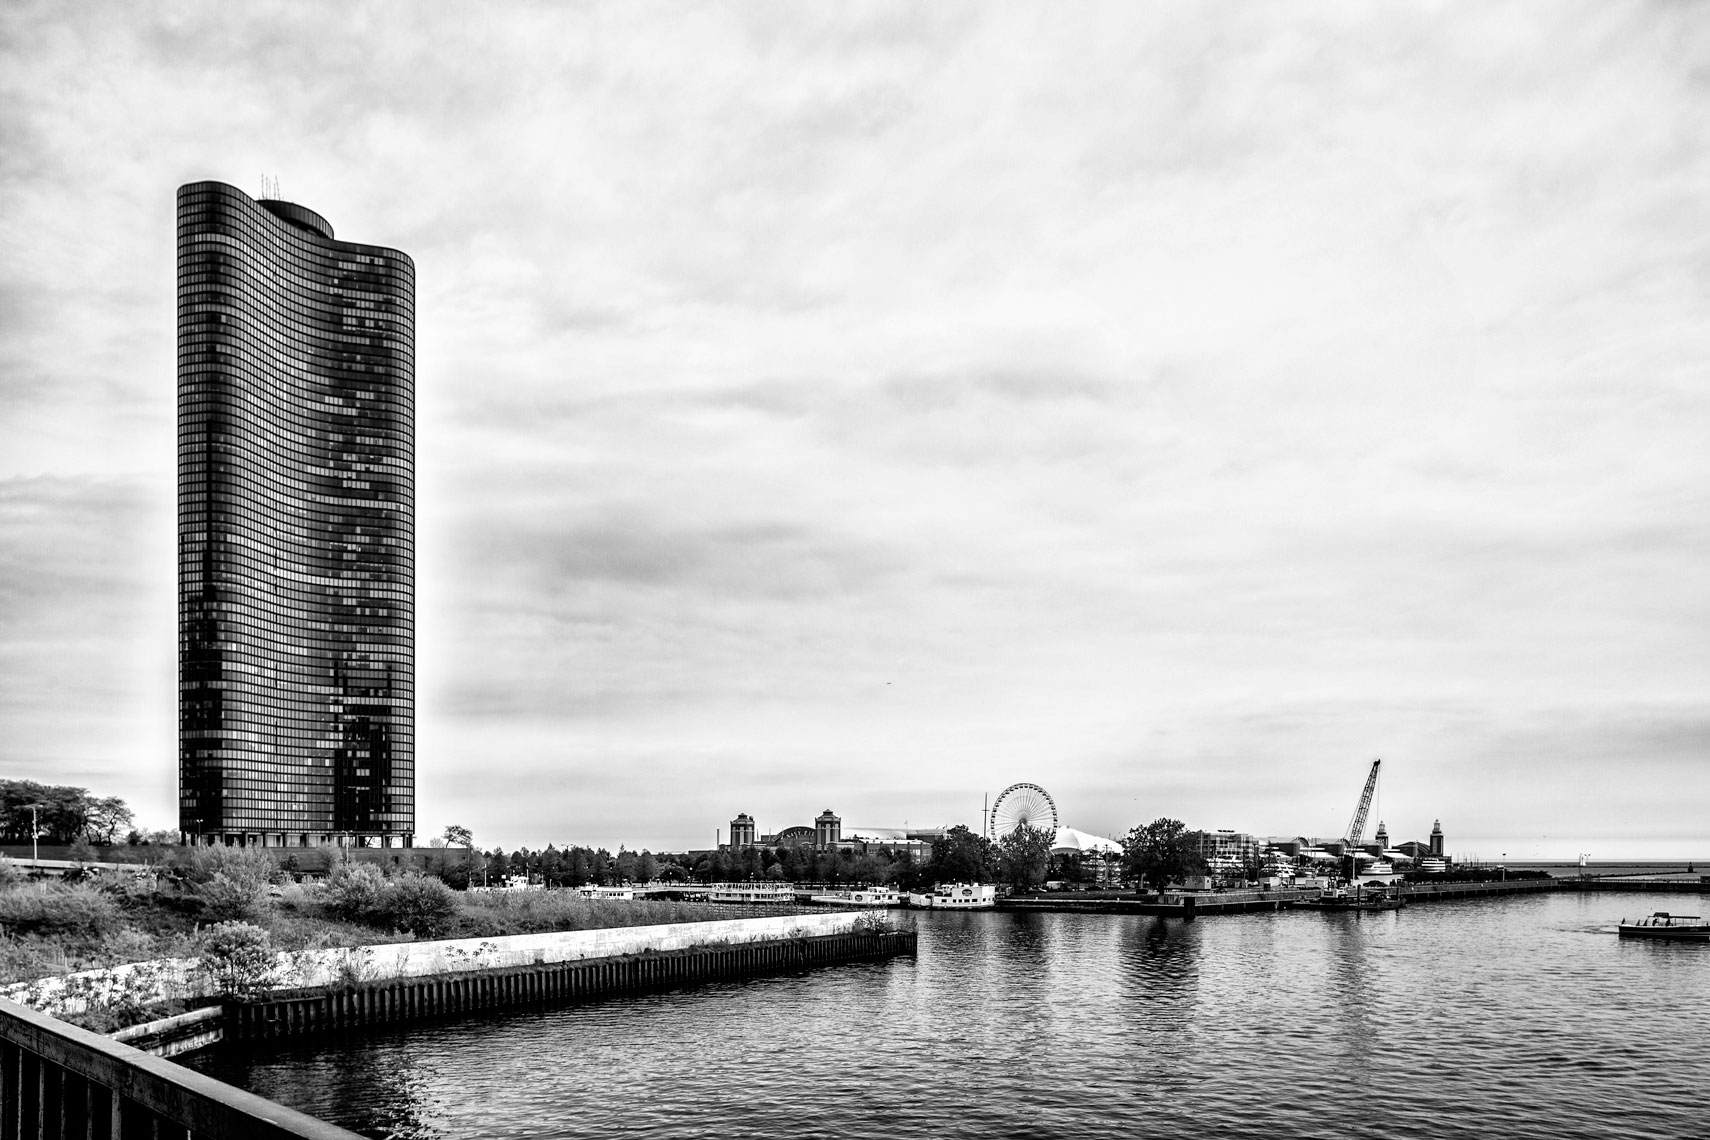 Chicago-5140-Edit-Edit-Edit.jpg